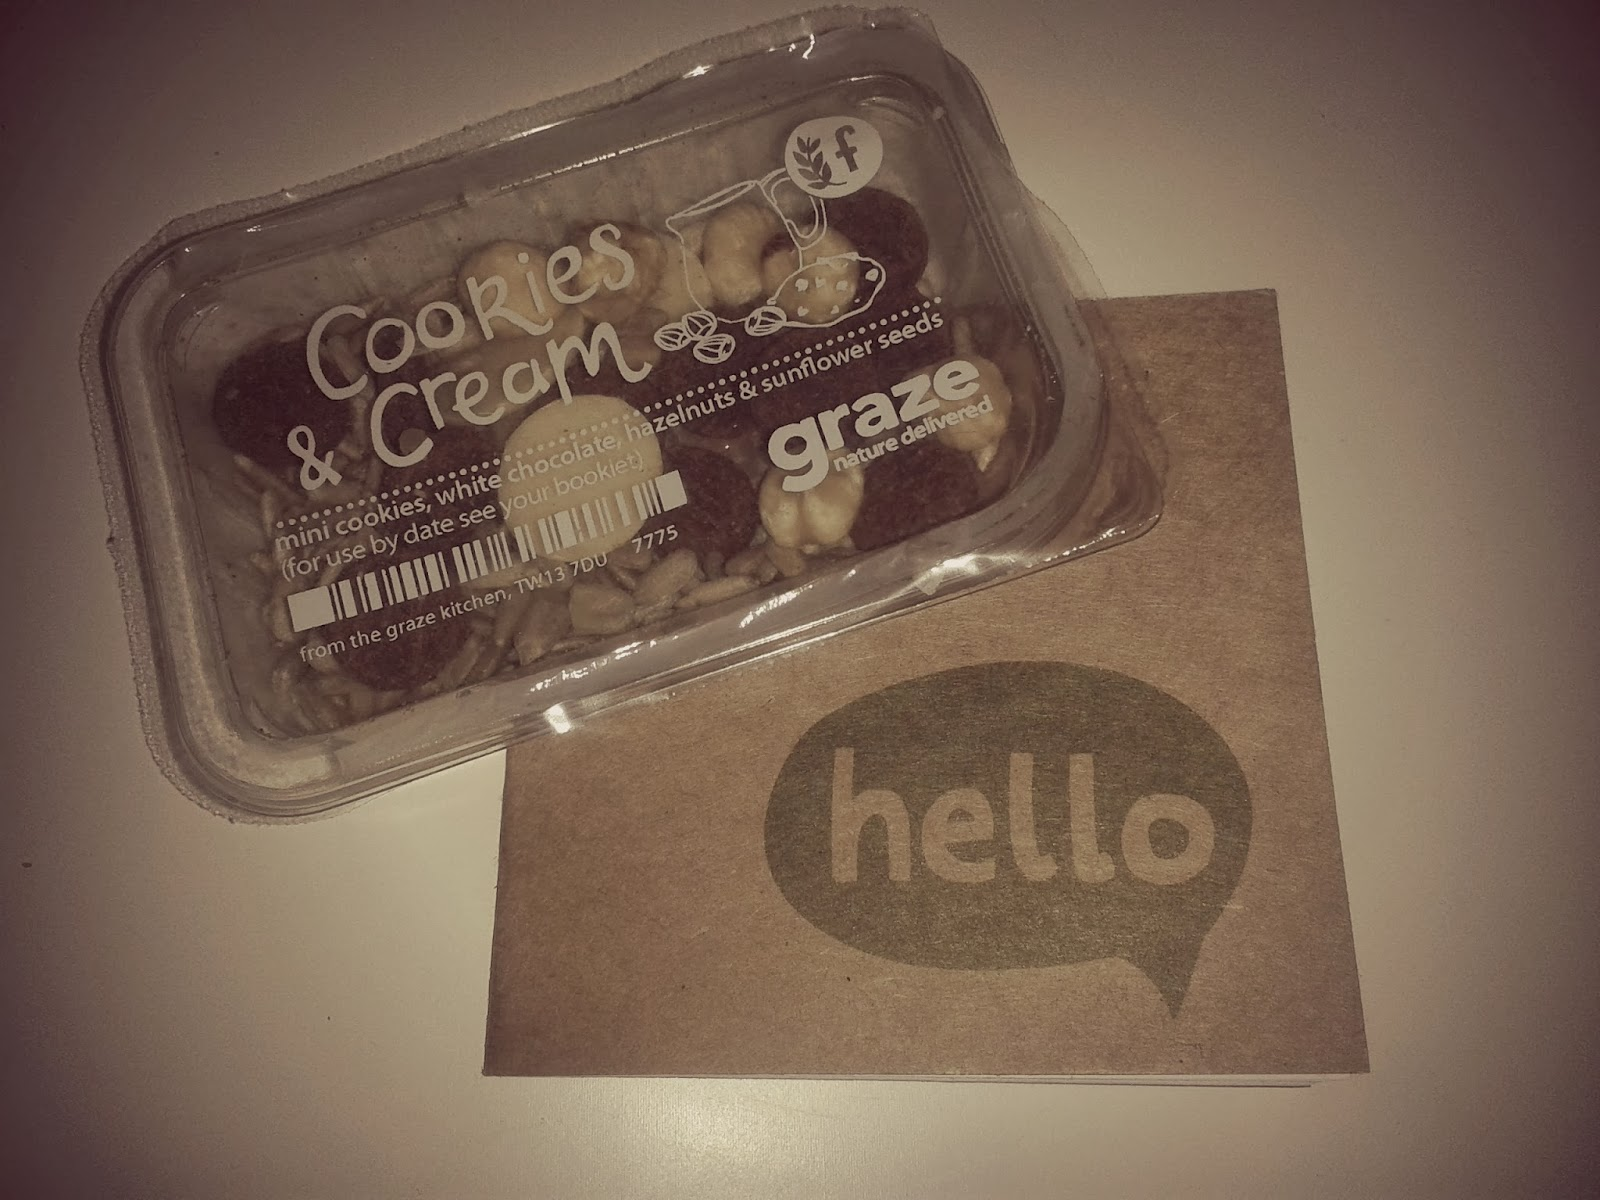 Project 365 Day 17 - Graze, Cookies & Cream // 76sunflowers